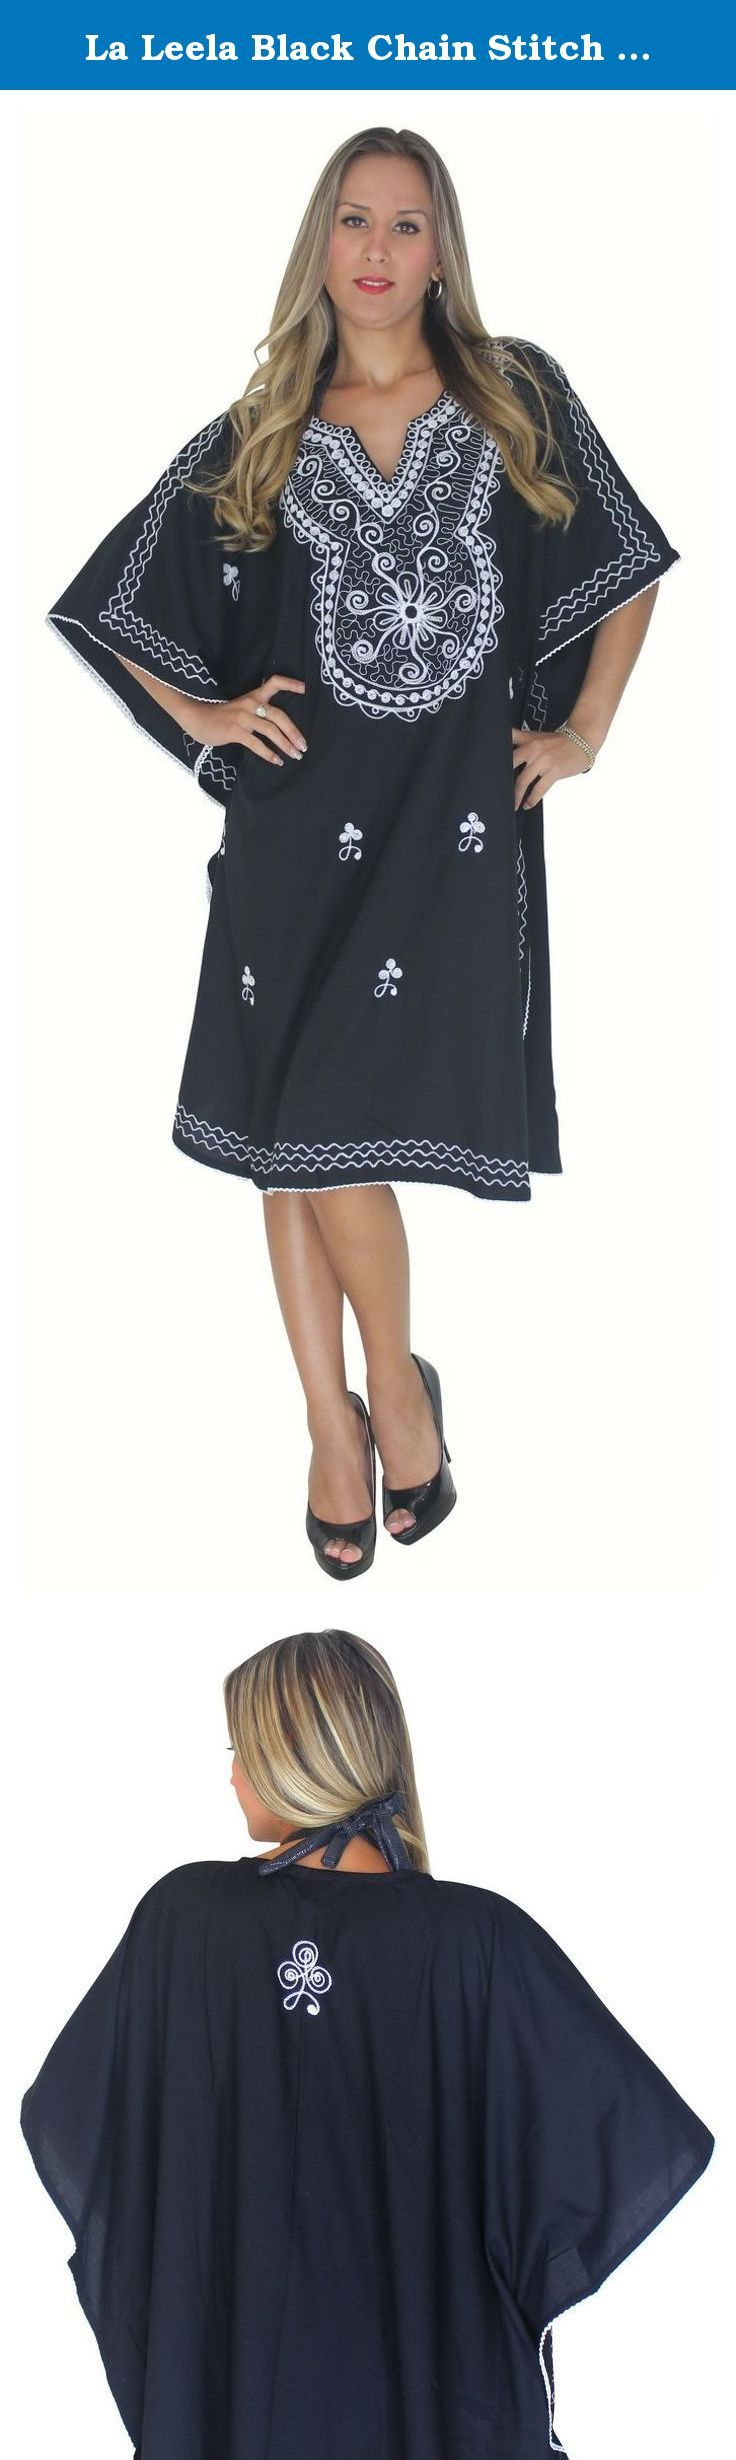 "La Leela Black Chain Stitch Embroidered Night Partywear Short Kaftan Caftan,One Size. Description:- ==> Welcome to LA LEELA ==> Enjoy Beach, Breeze and Nature with La Leela's ""VIBRANT BEACH COLLECTION"" and stay calm and classy! . ==> Fabric : DELICATE DESIGNER EMBROIDERED LIGHTWEIGHT SMOOTH RAYON FABRIC US Size : From Regular 14 (L) TO Plus Size 28W (4X) ➤ UK SIZE : FROM REGULAR 14 (M) TO 30(XXXL) ➤ BUST : 56 Inches [ 142 cms ]➤ Length : 43 Inches [ 109 cms ] ==> Clothing Type : Vintage..."